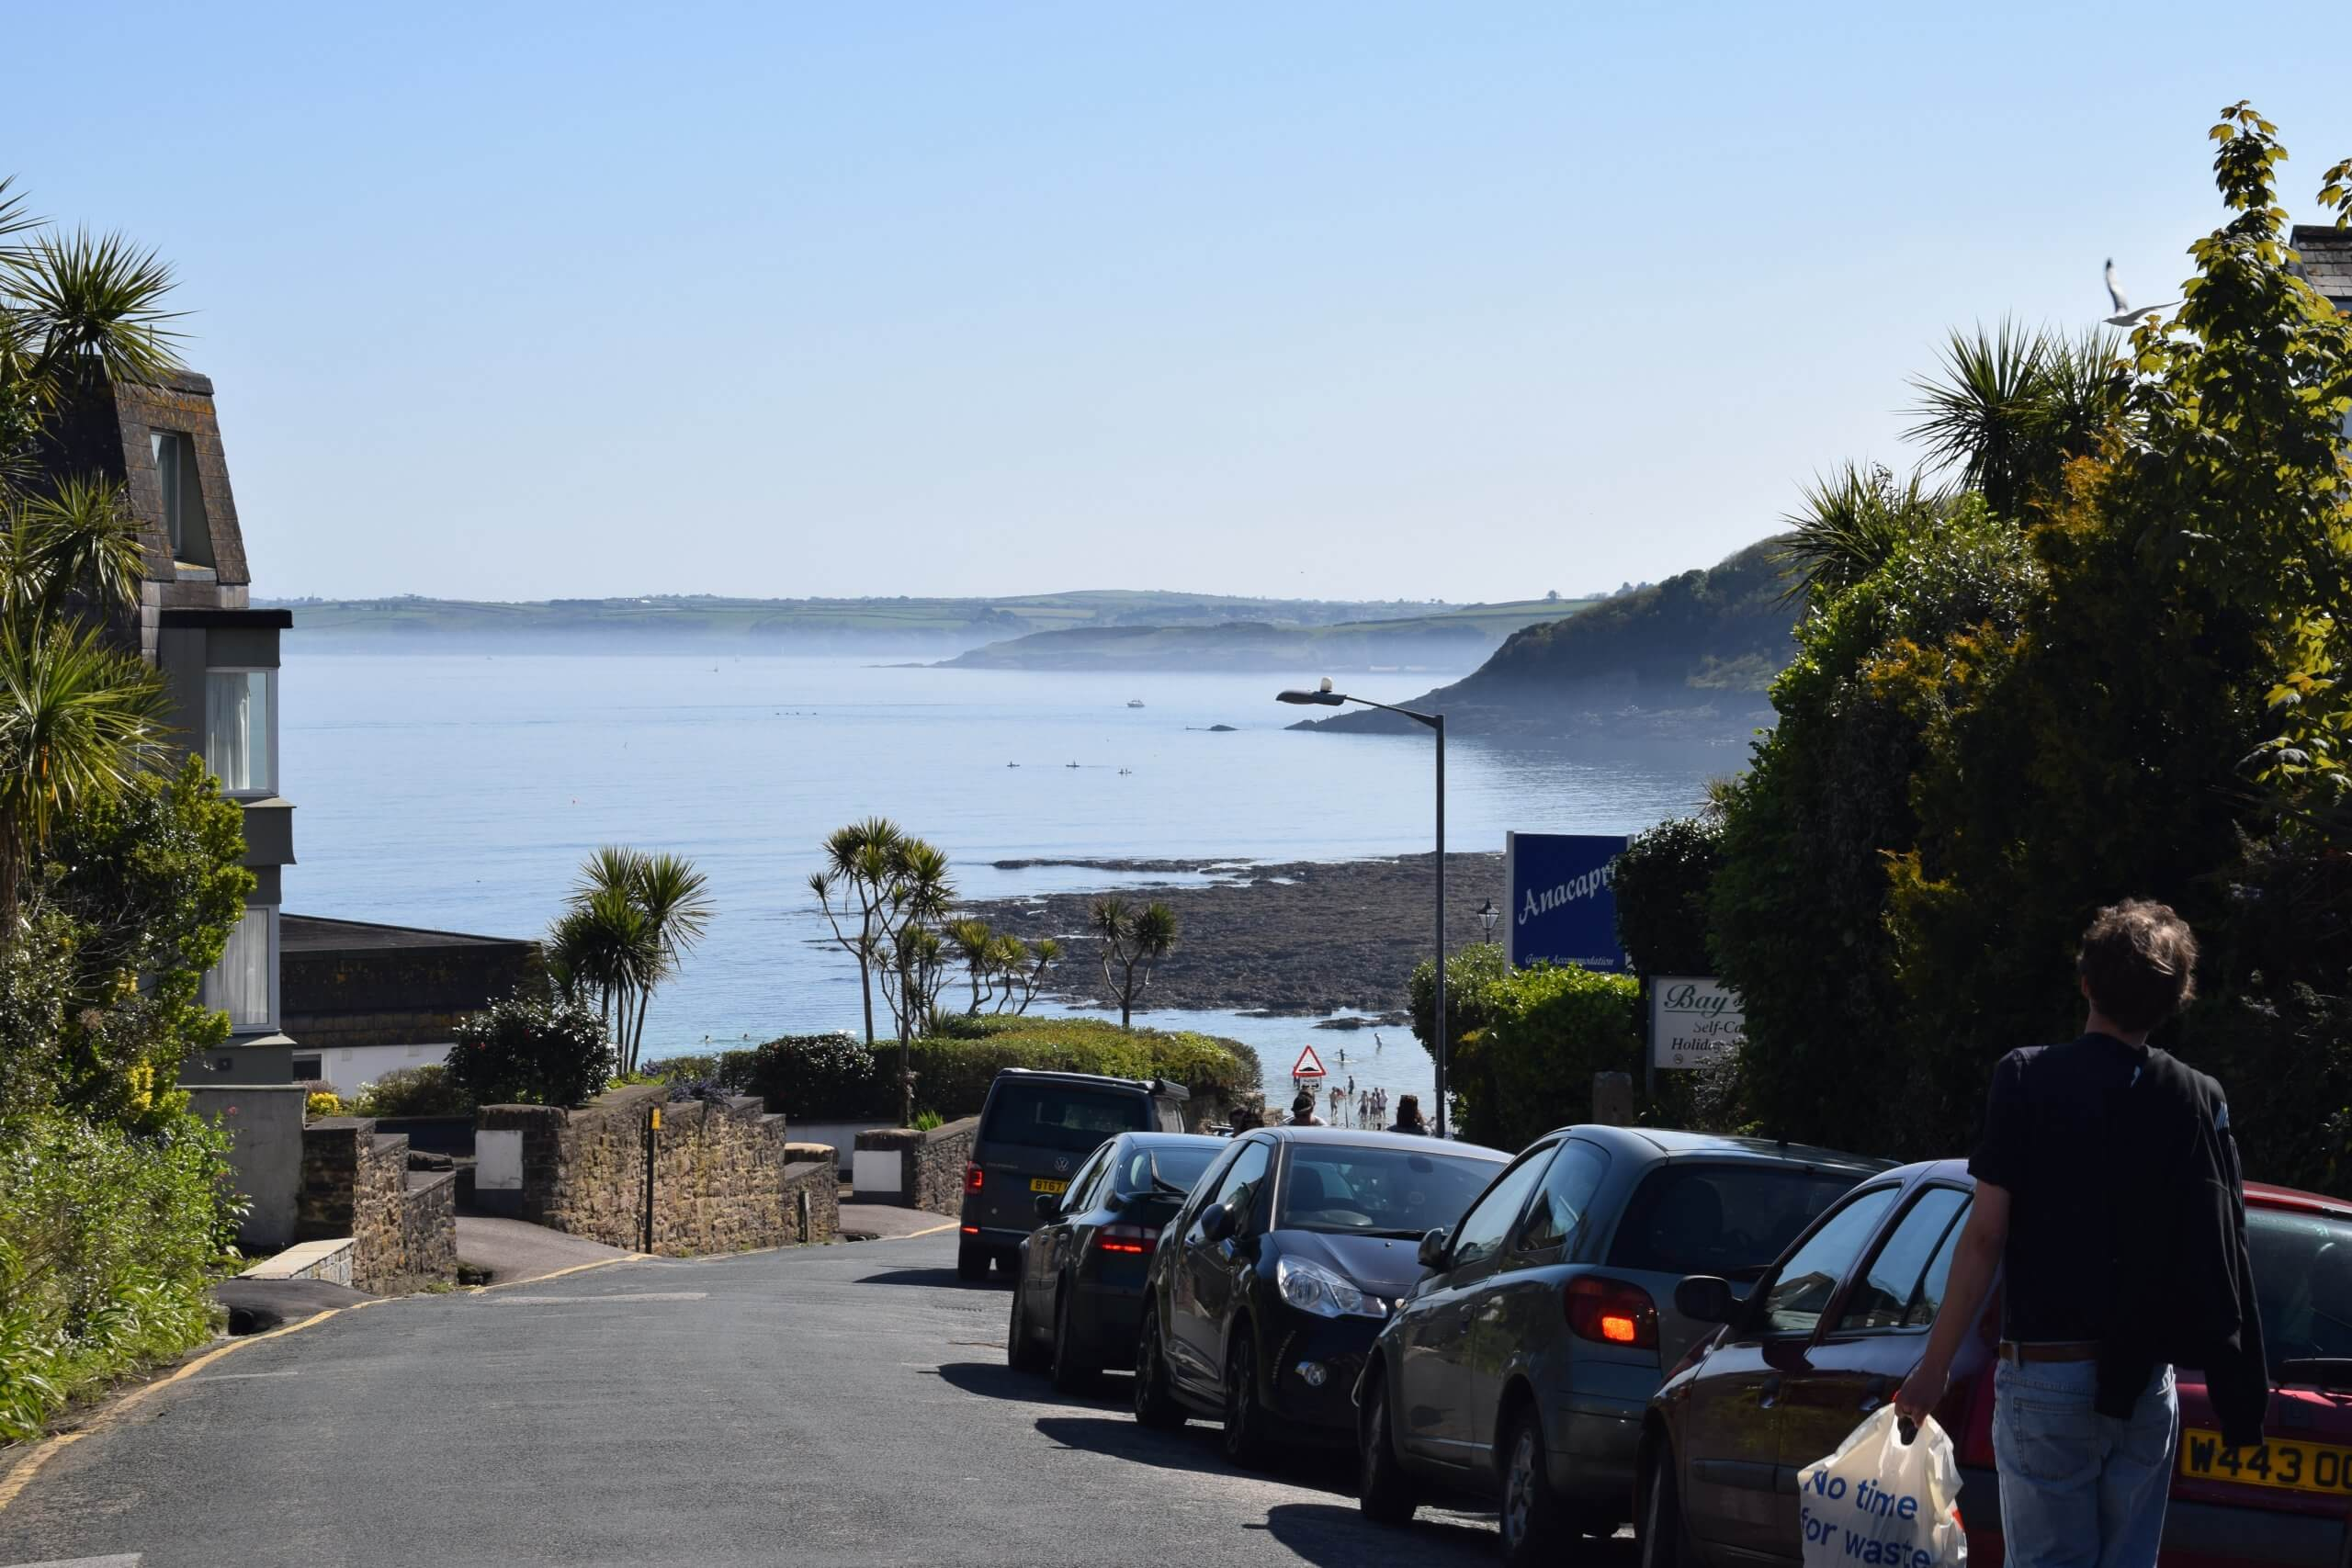 narrow UK street leading down hill to sea and clear blue sky, cars parked on right hand side of road